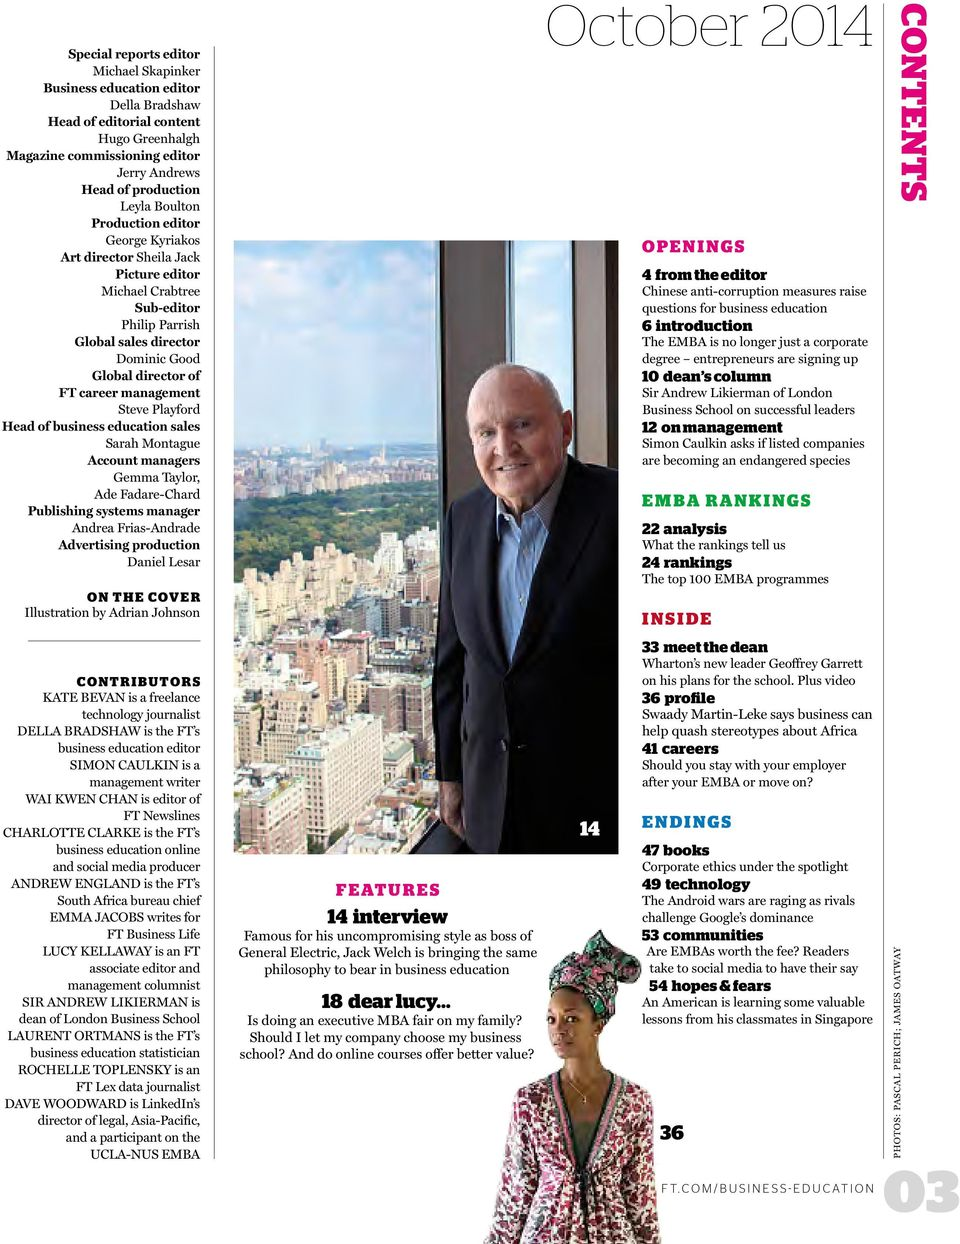 October Ft Business Education Executive Mba Ranking Interview Jack